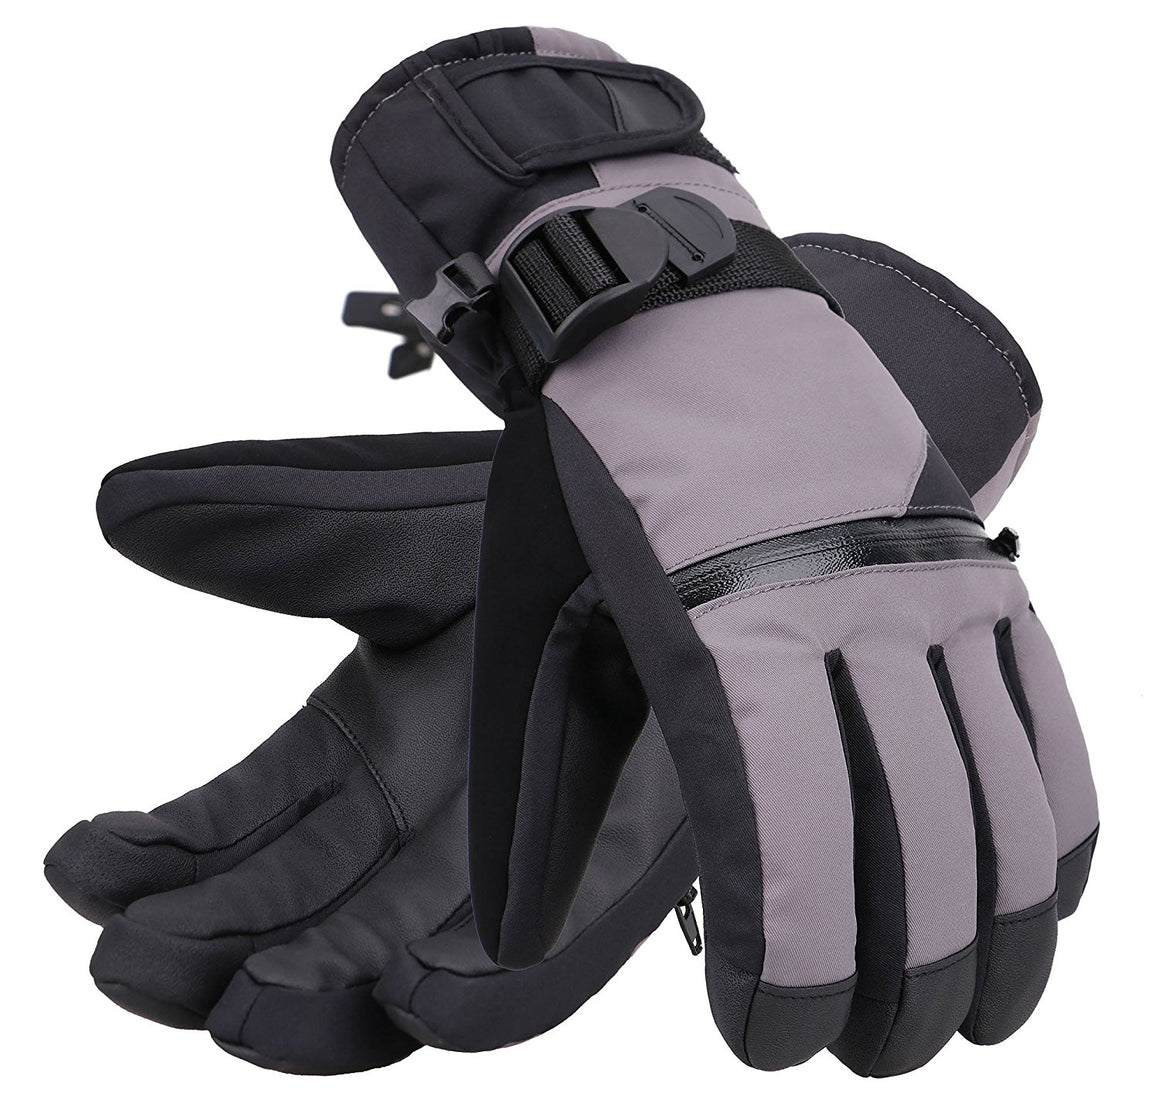 Andorra Men's Touchscreen Winter Sports Gloves w/ Zippered Pocket - Grey